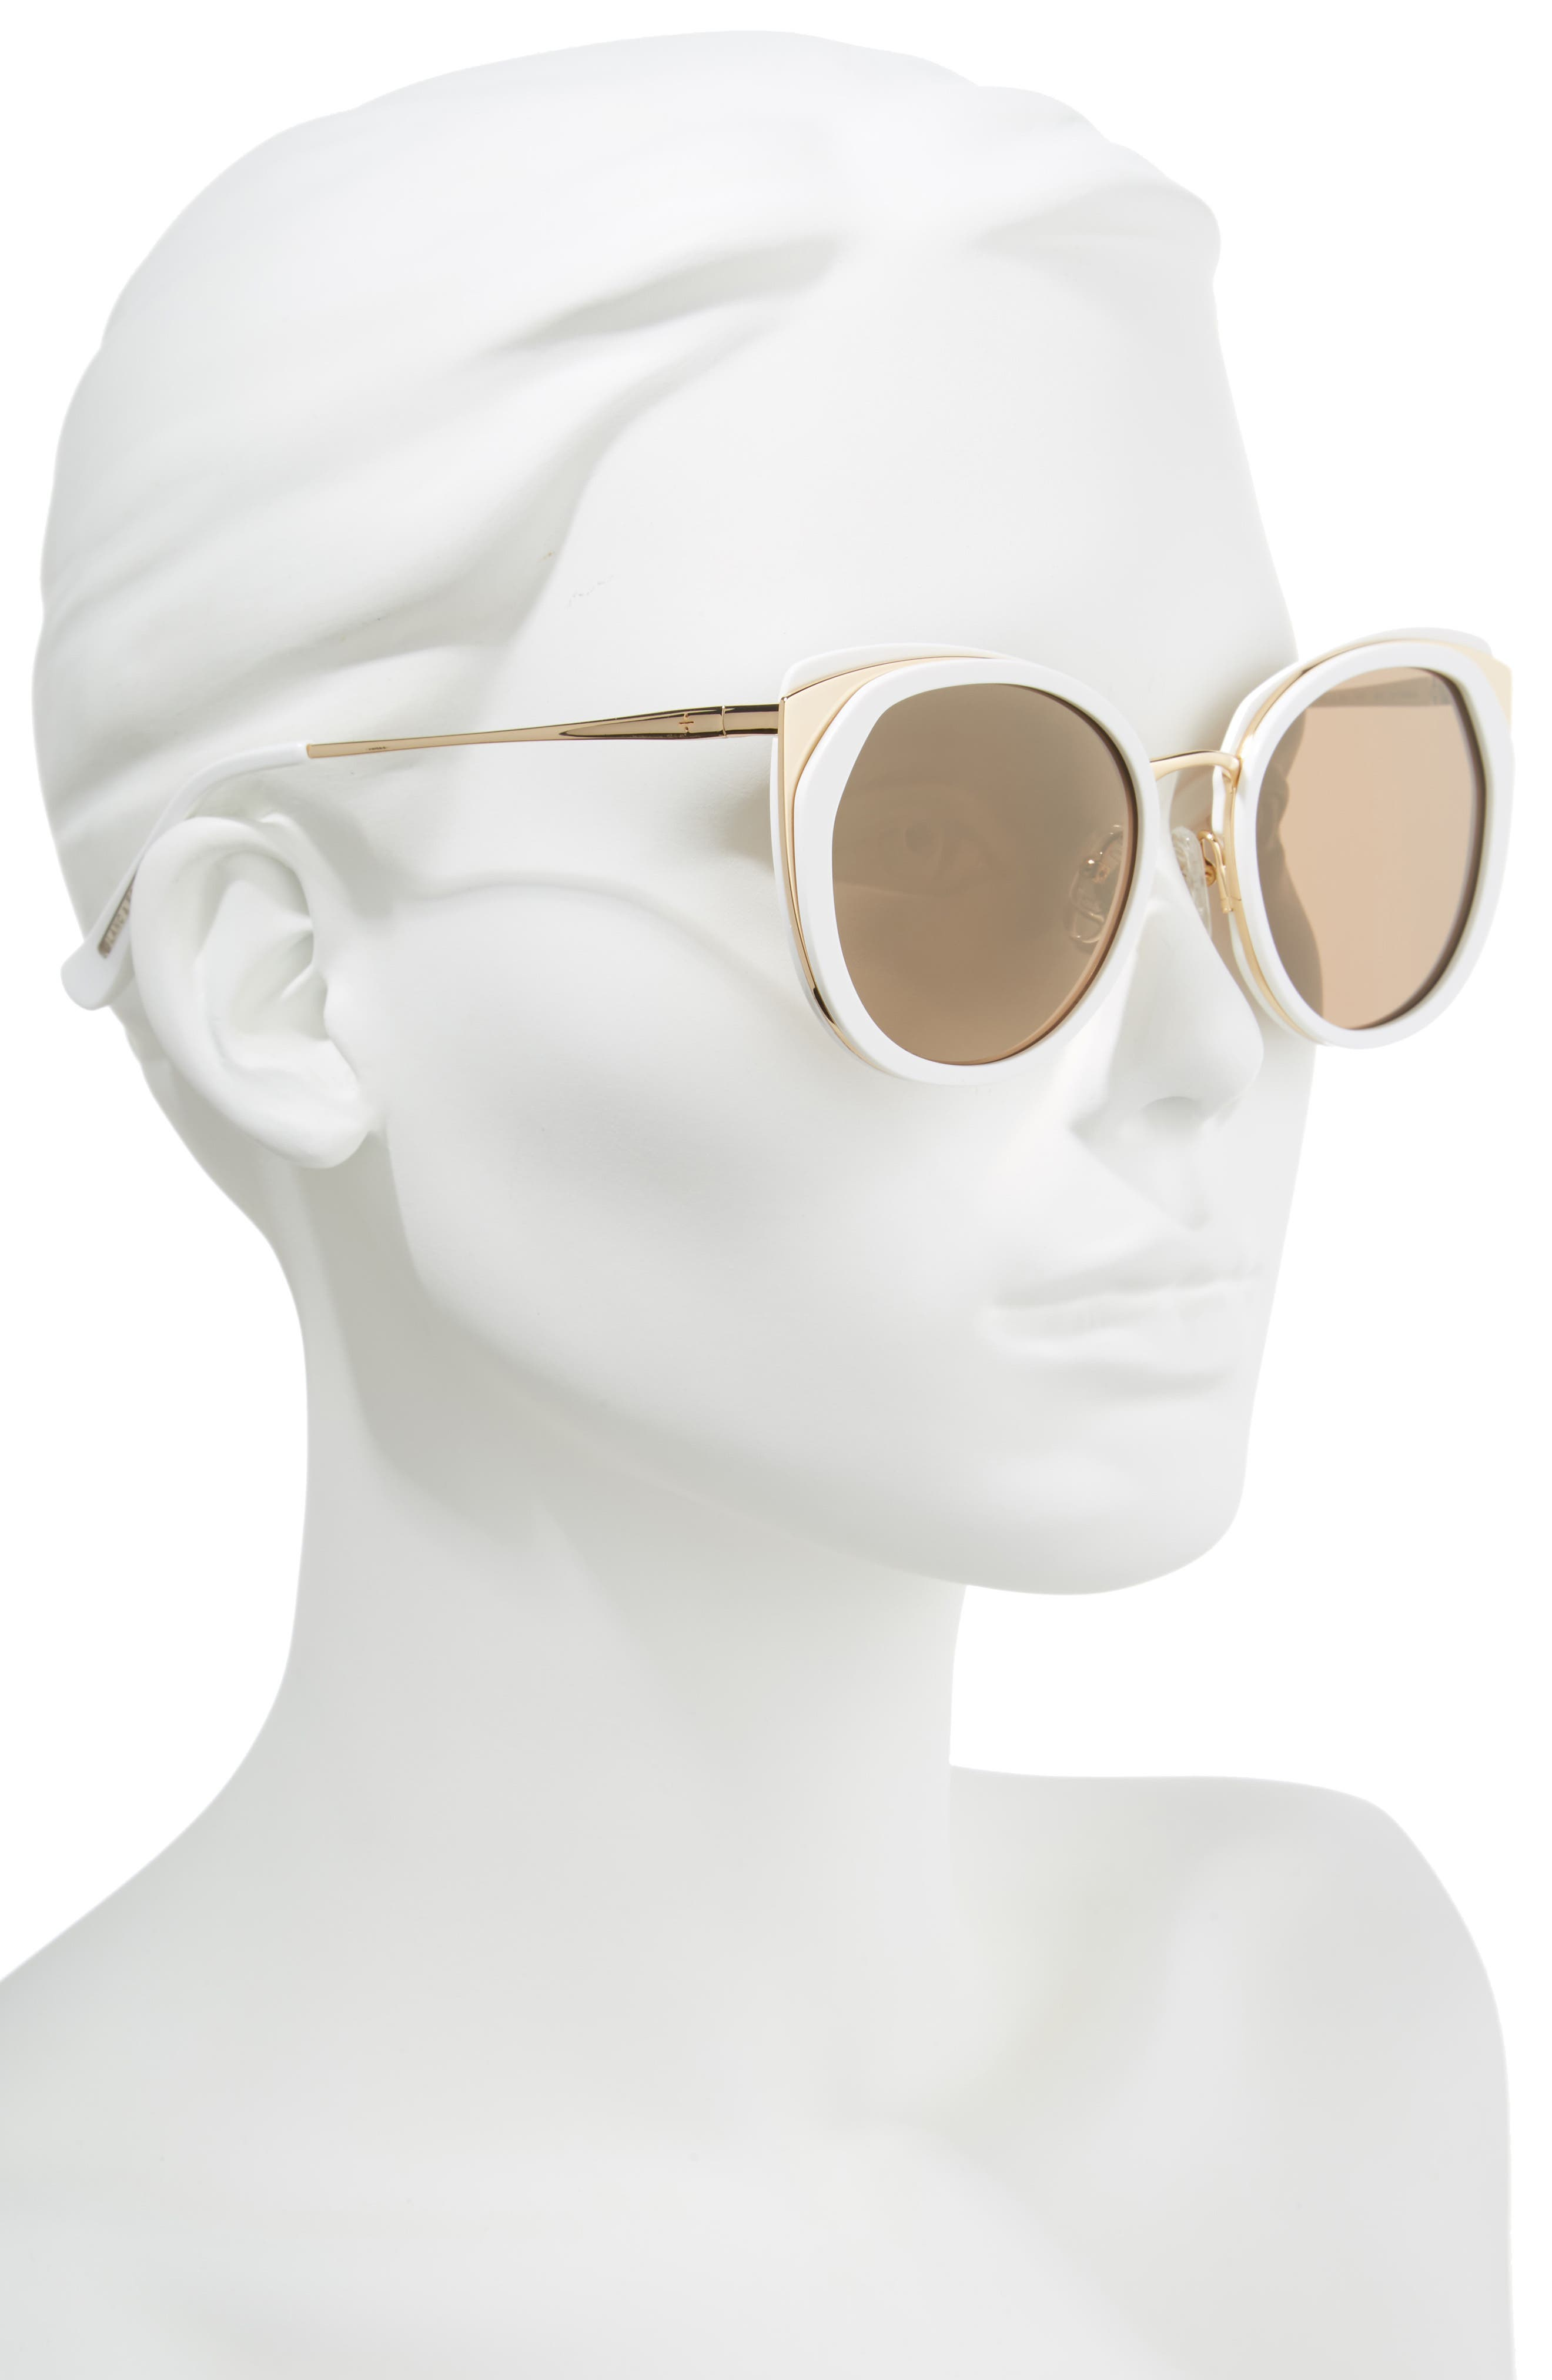 BLANC & ECLARE Istanbul 55mm Polarized Cat Eye Sunglasses,                             Alternate thumbnail 2, color,                             Snow/ Gold/ Solid Gold Mirror